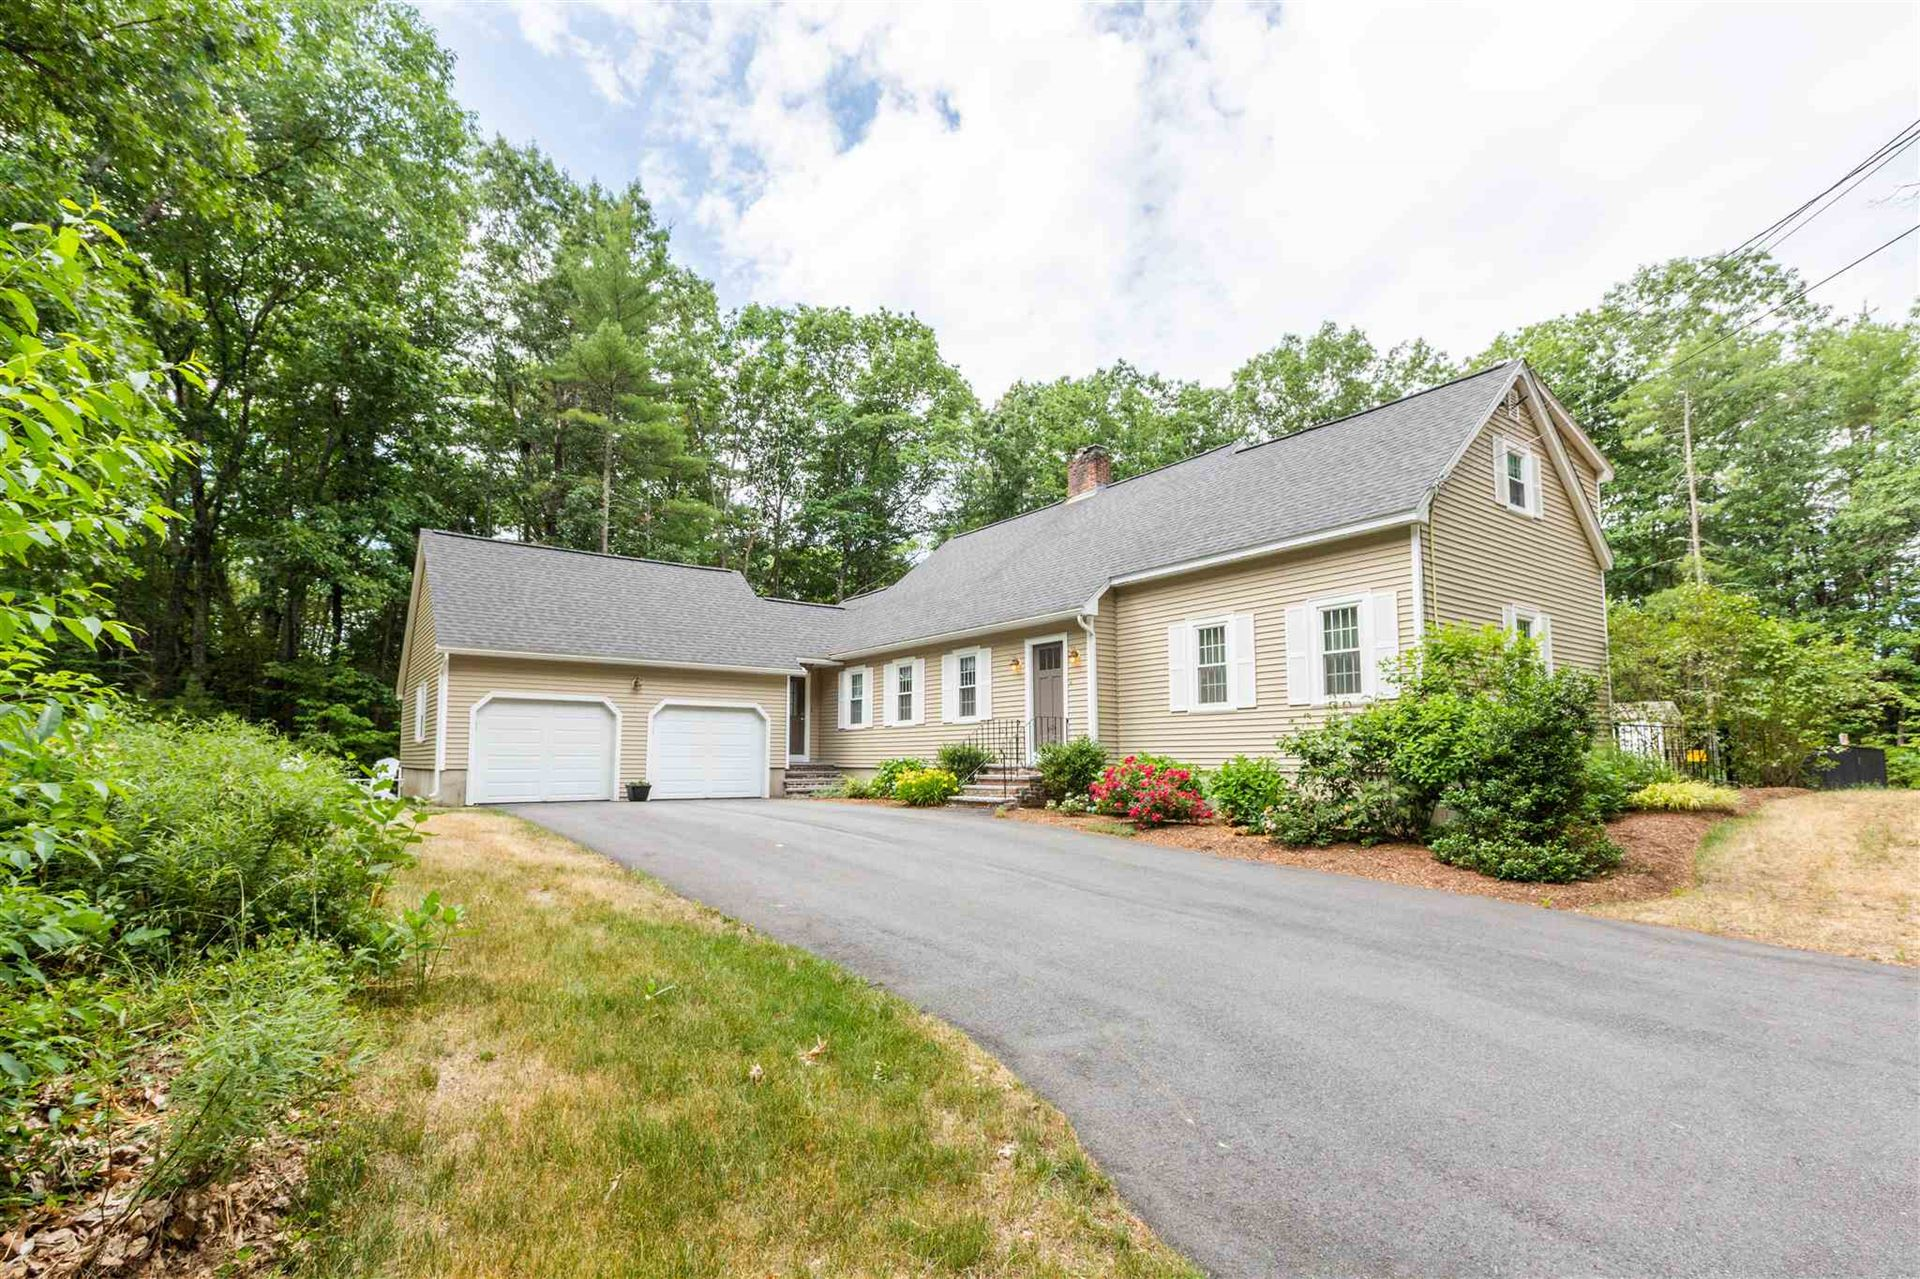 18 Old Stone Way, Bedford, NH 03110 - #: 4812907